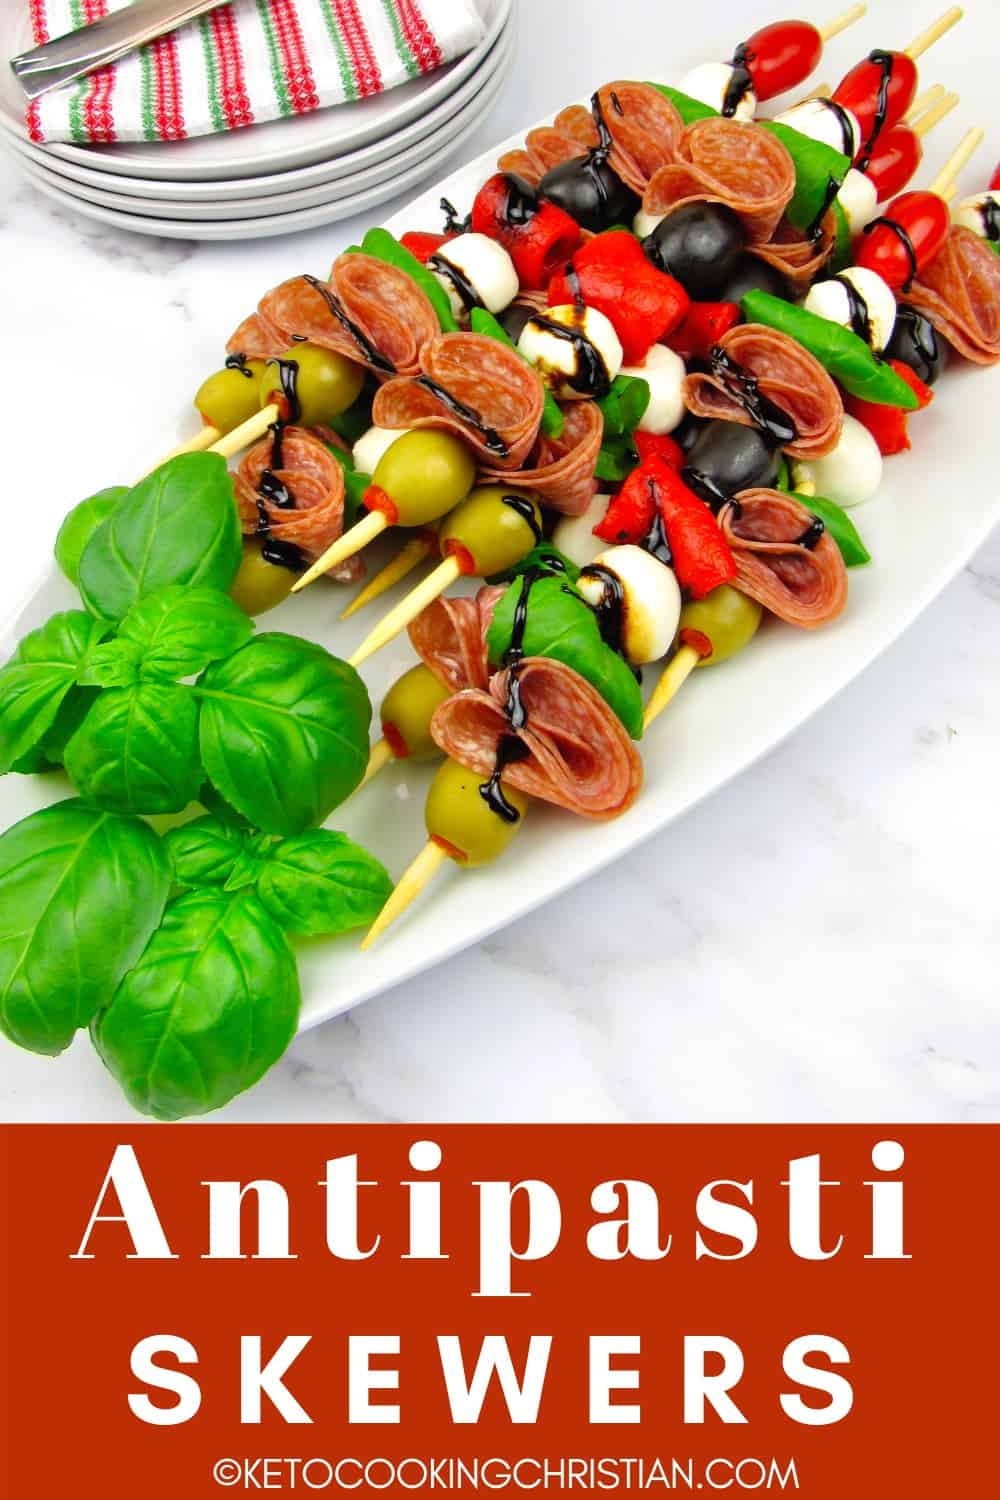 overhead view of antipasti skewers on white platter with basil leaves and balsamic glaze garnish